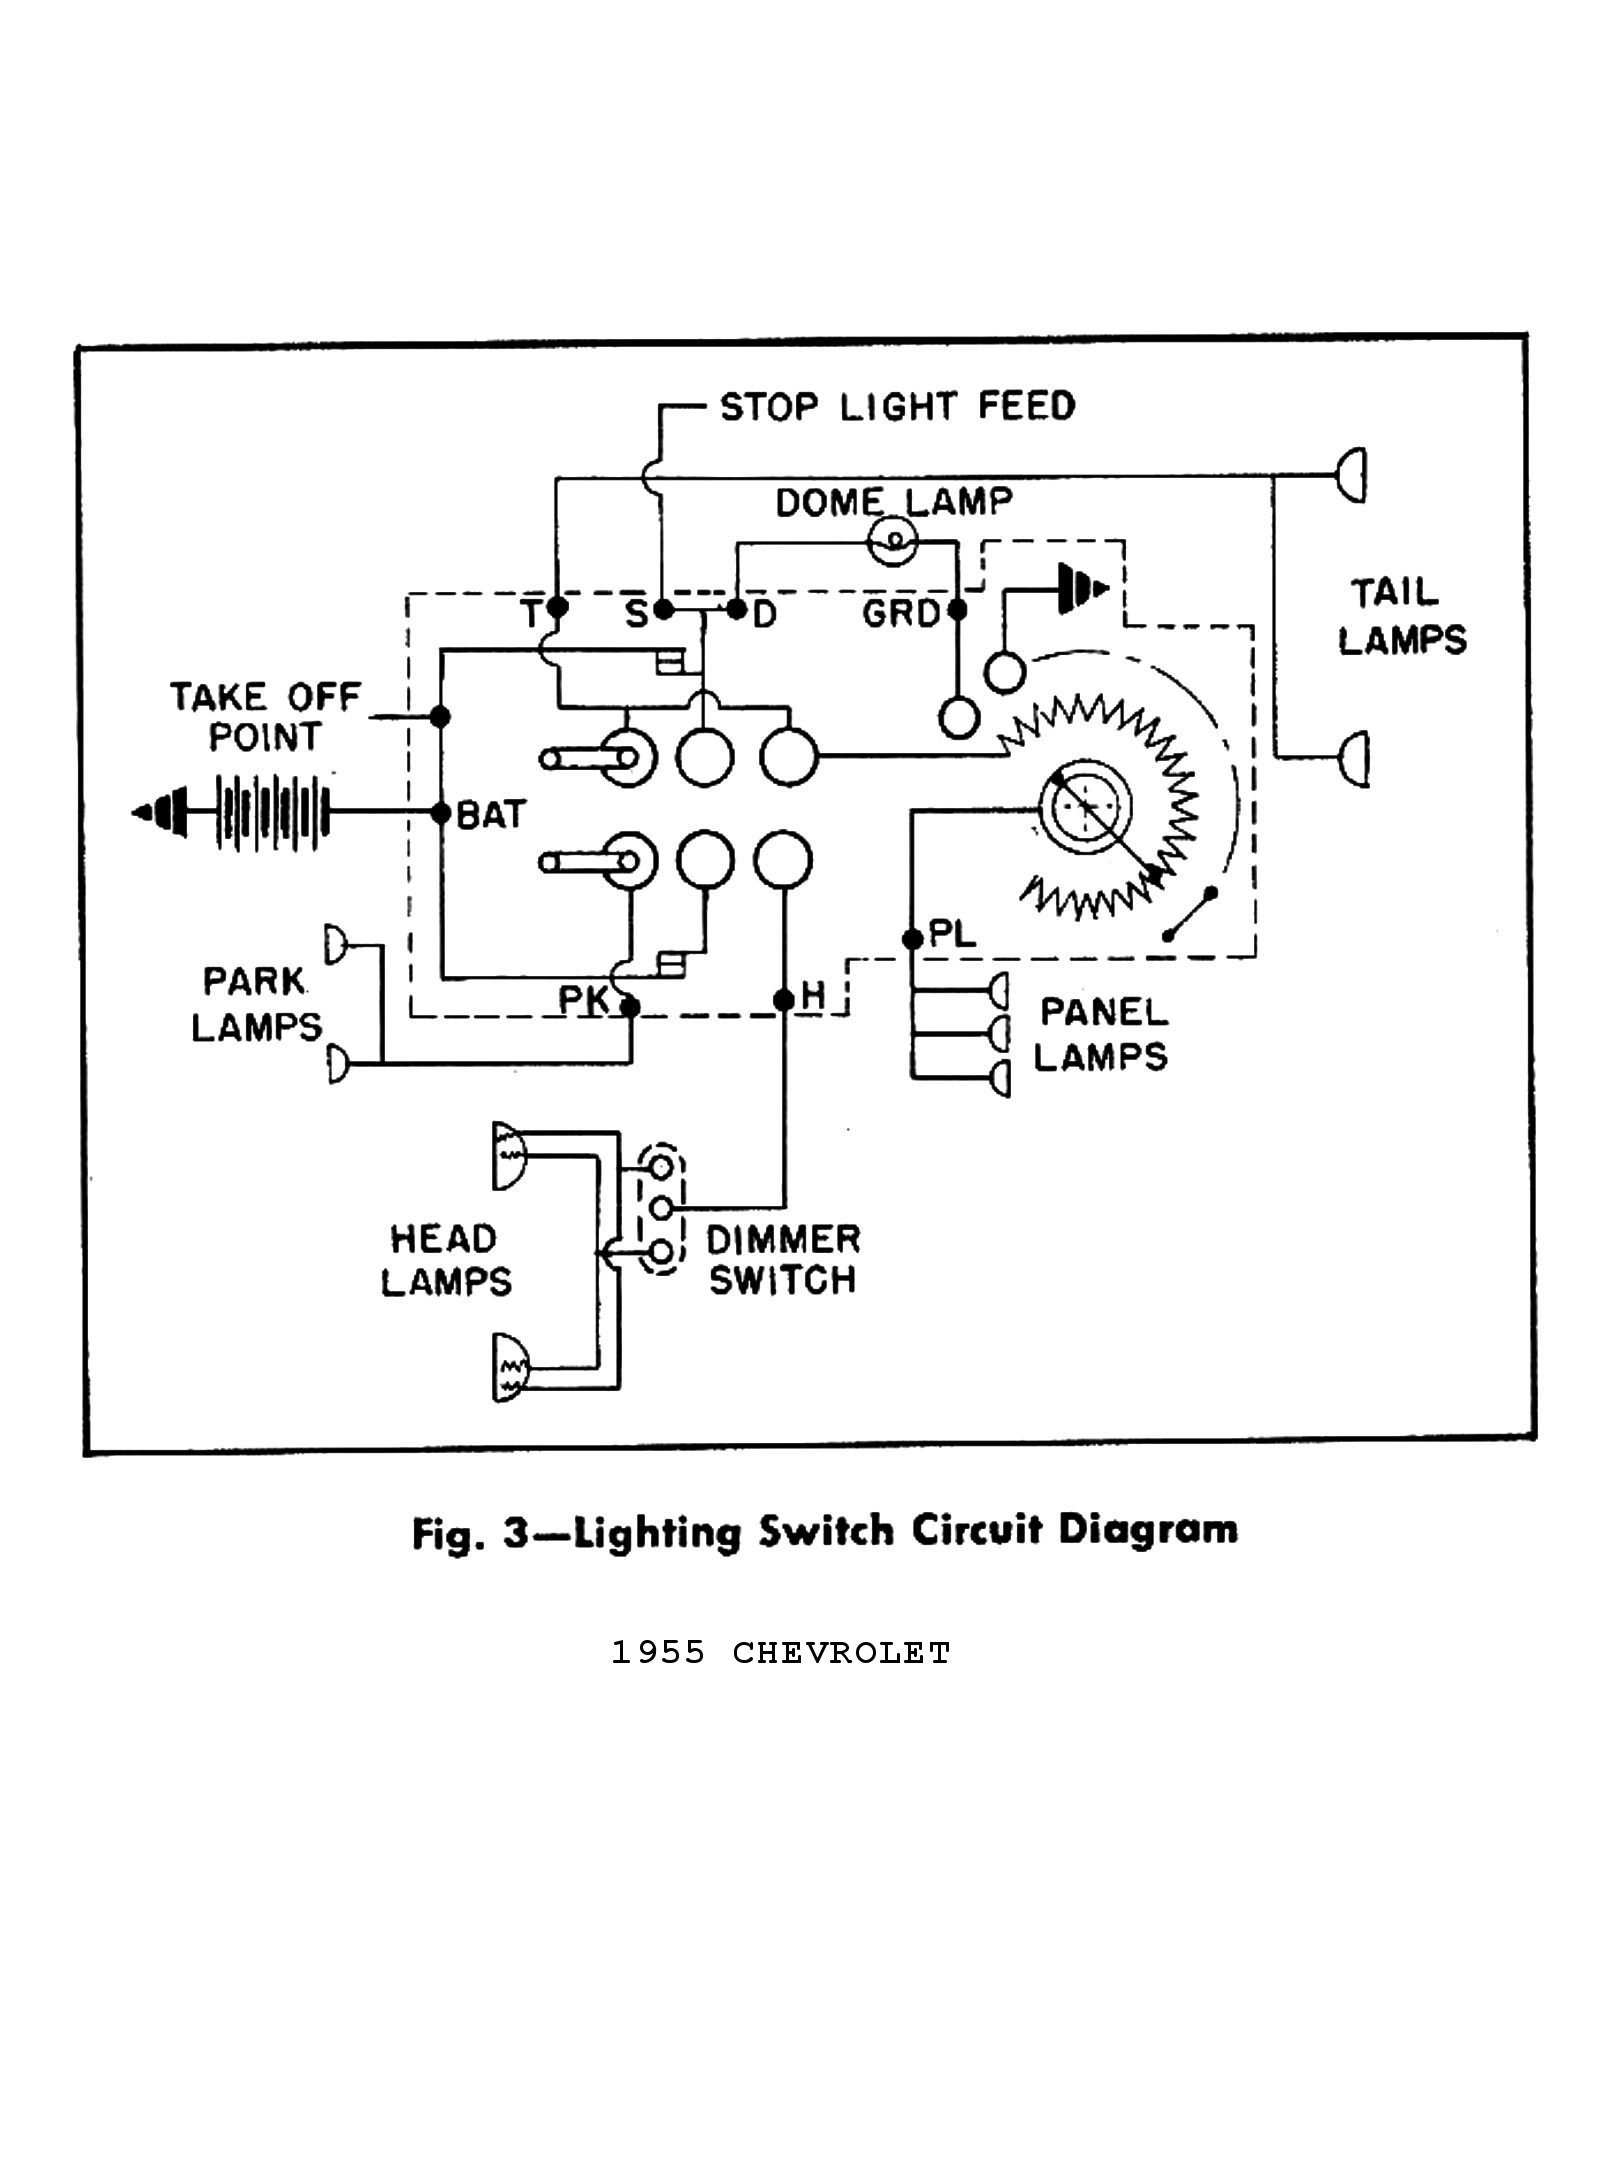 Chevy Wiring Diagrams Diagram For Lamp 1955 Lighting Switch Circuit